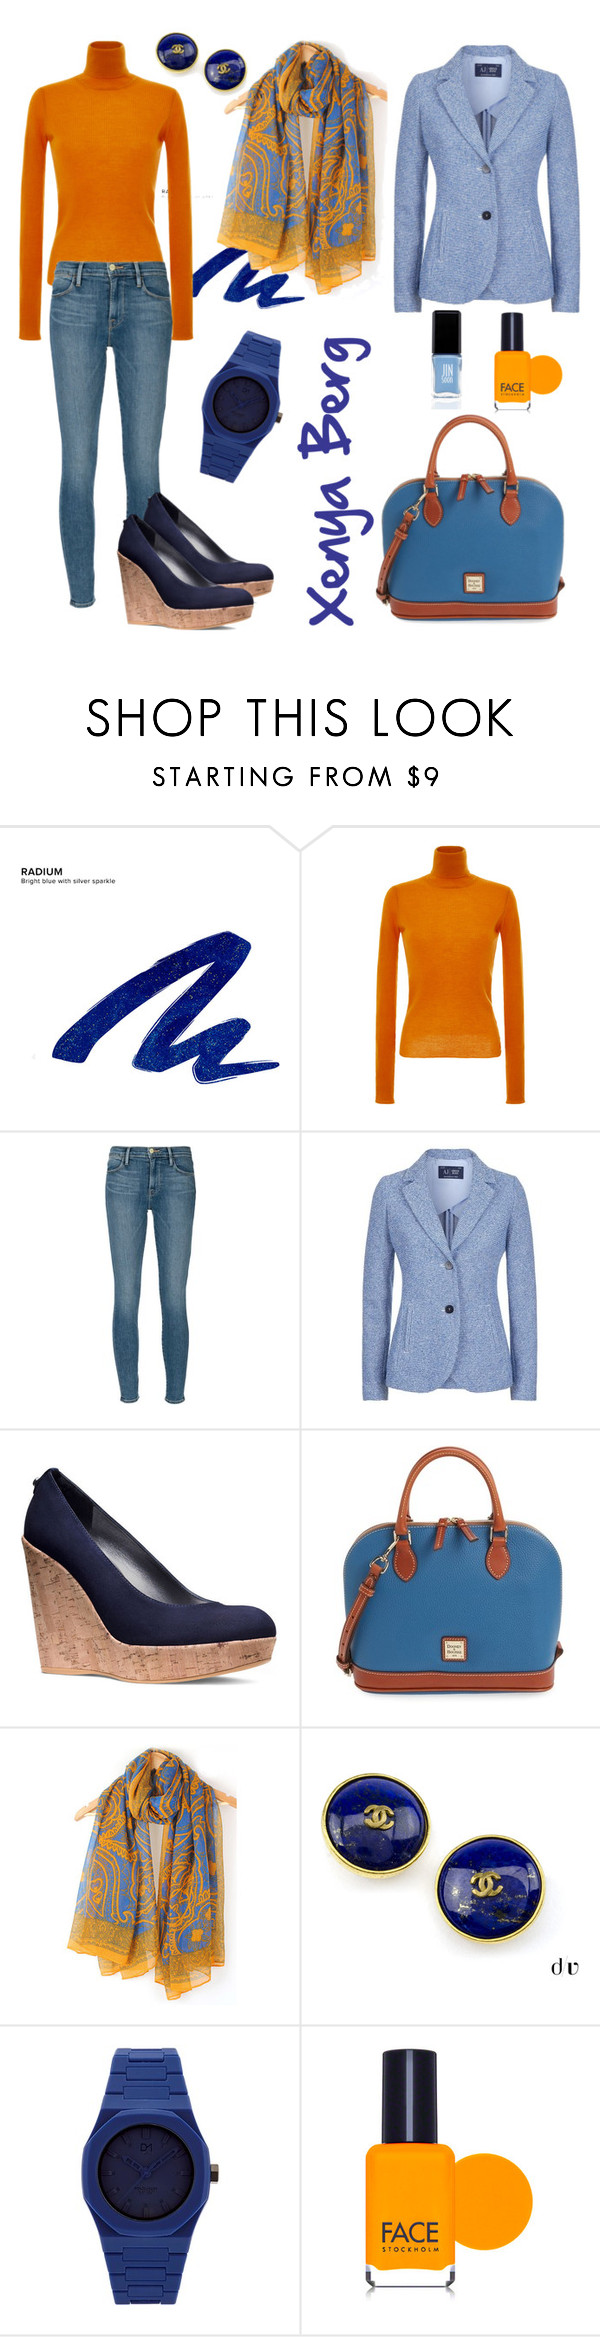 """#комплементарная схема #verysmartcasual"" by lady-sybill-vimes on Polyvore featuring мода, Urban Decay, Carven, Frame Denim, Armani Jeans, Stuart Weitzman, Dooney & Bourke, Chanel, d1 Milano и FACE Stockholm"